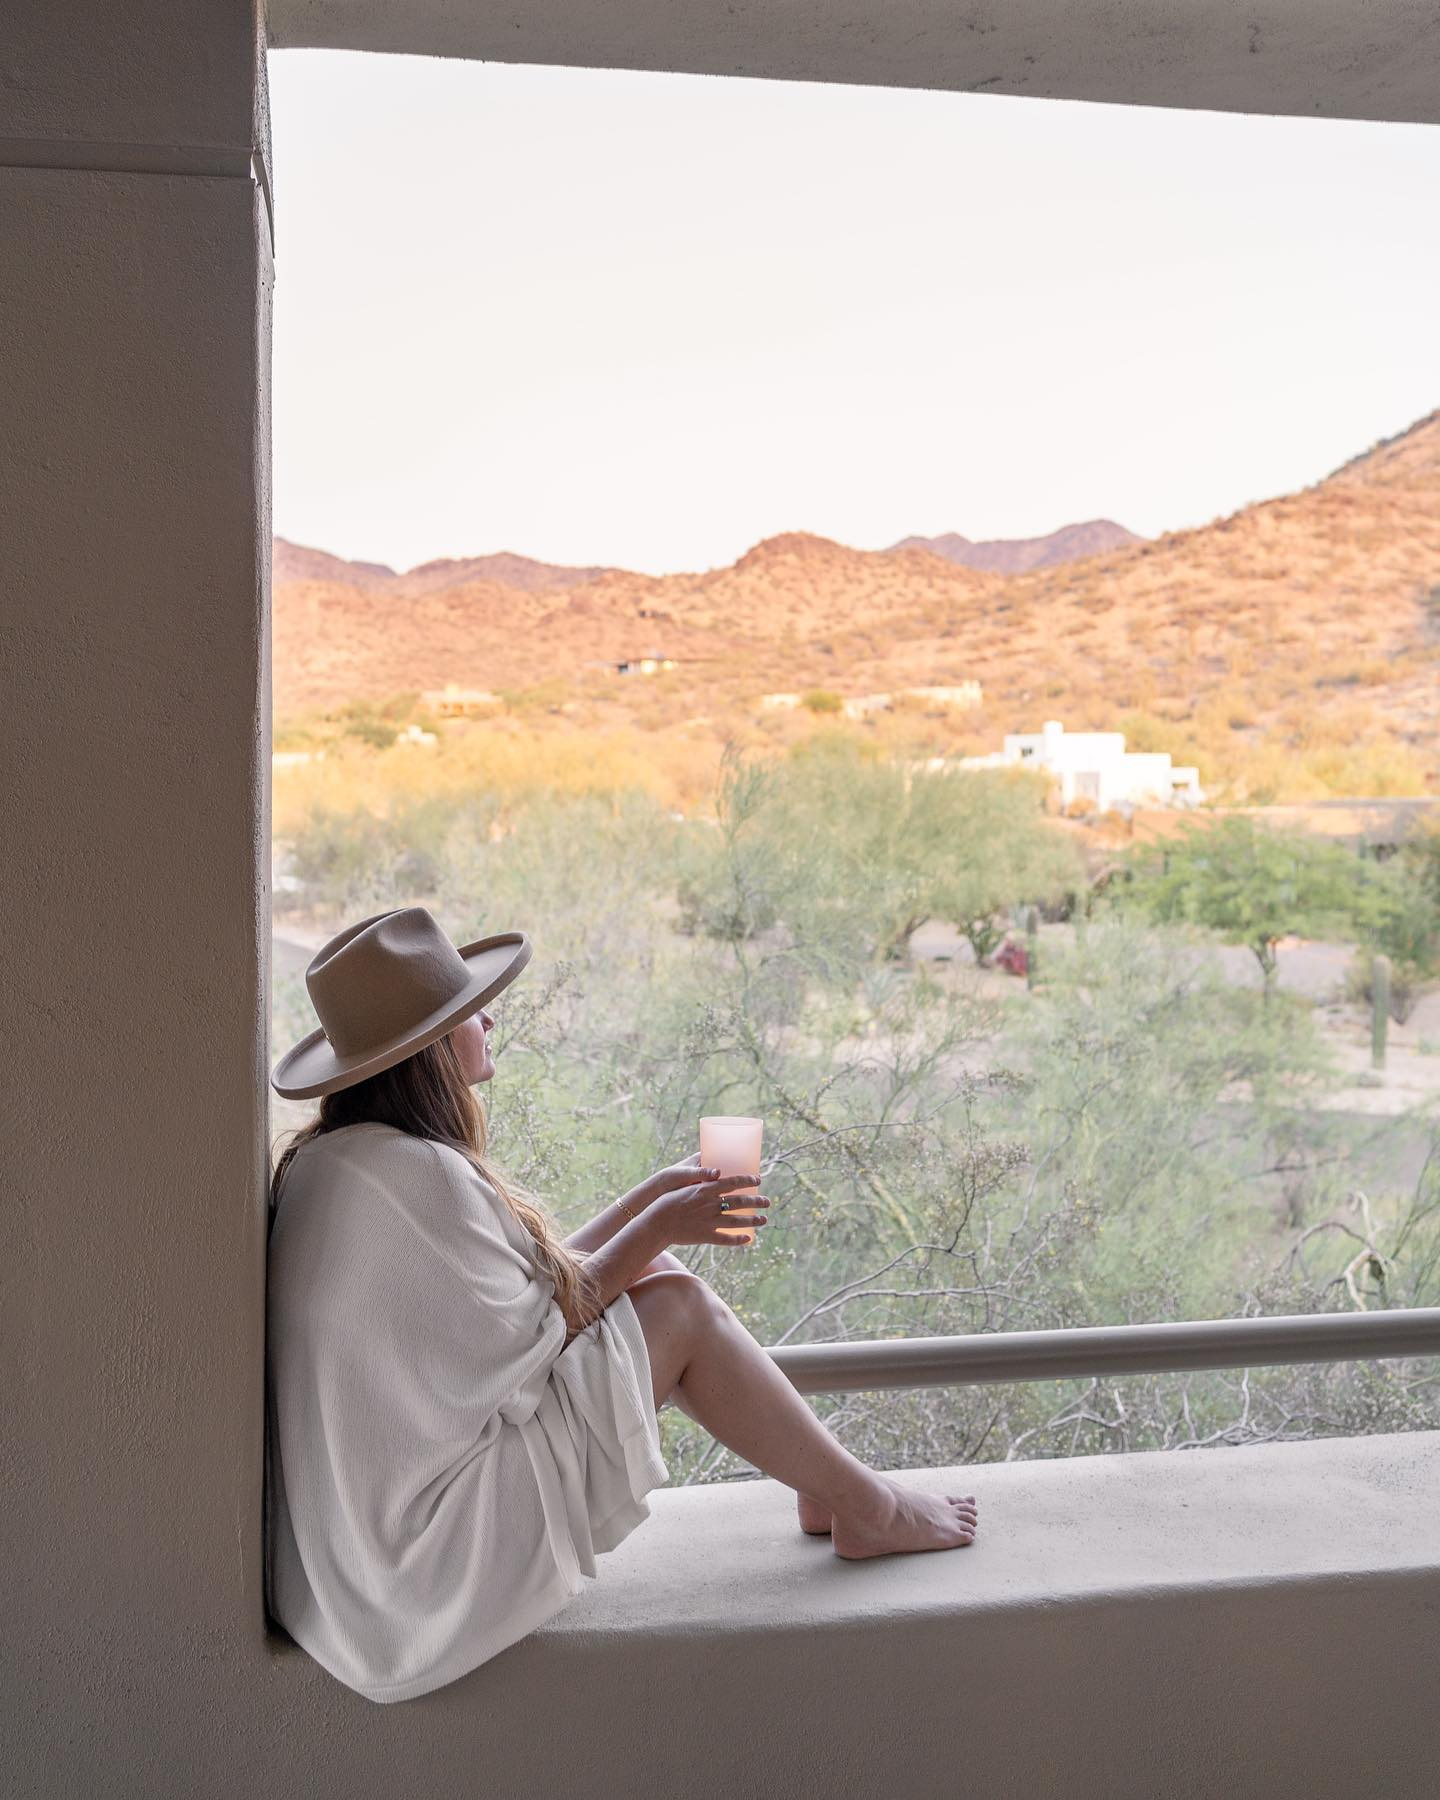 Woman looking out into desert. Woman sitting on edge of window drinking wine. Woman wearing hat and poncho. Woman wearing poncho. Woman on vacation in the desert.